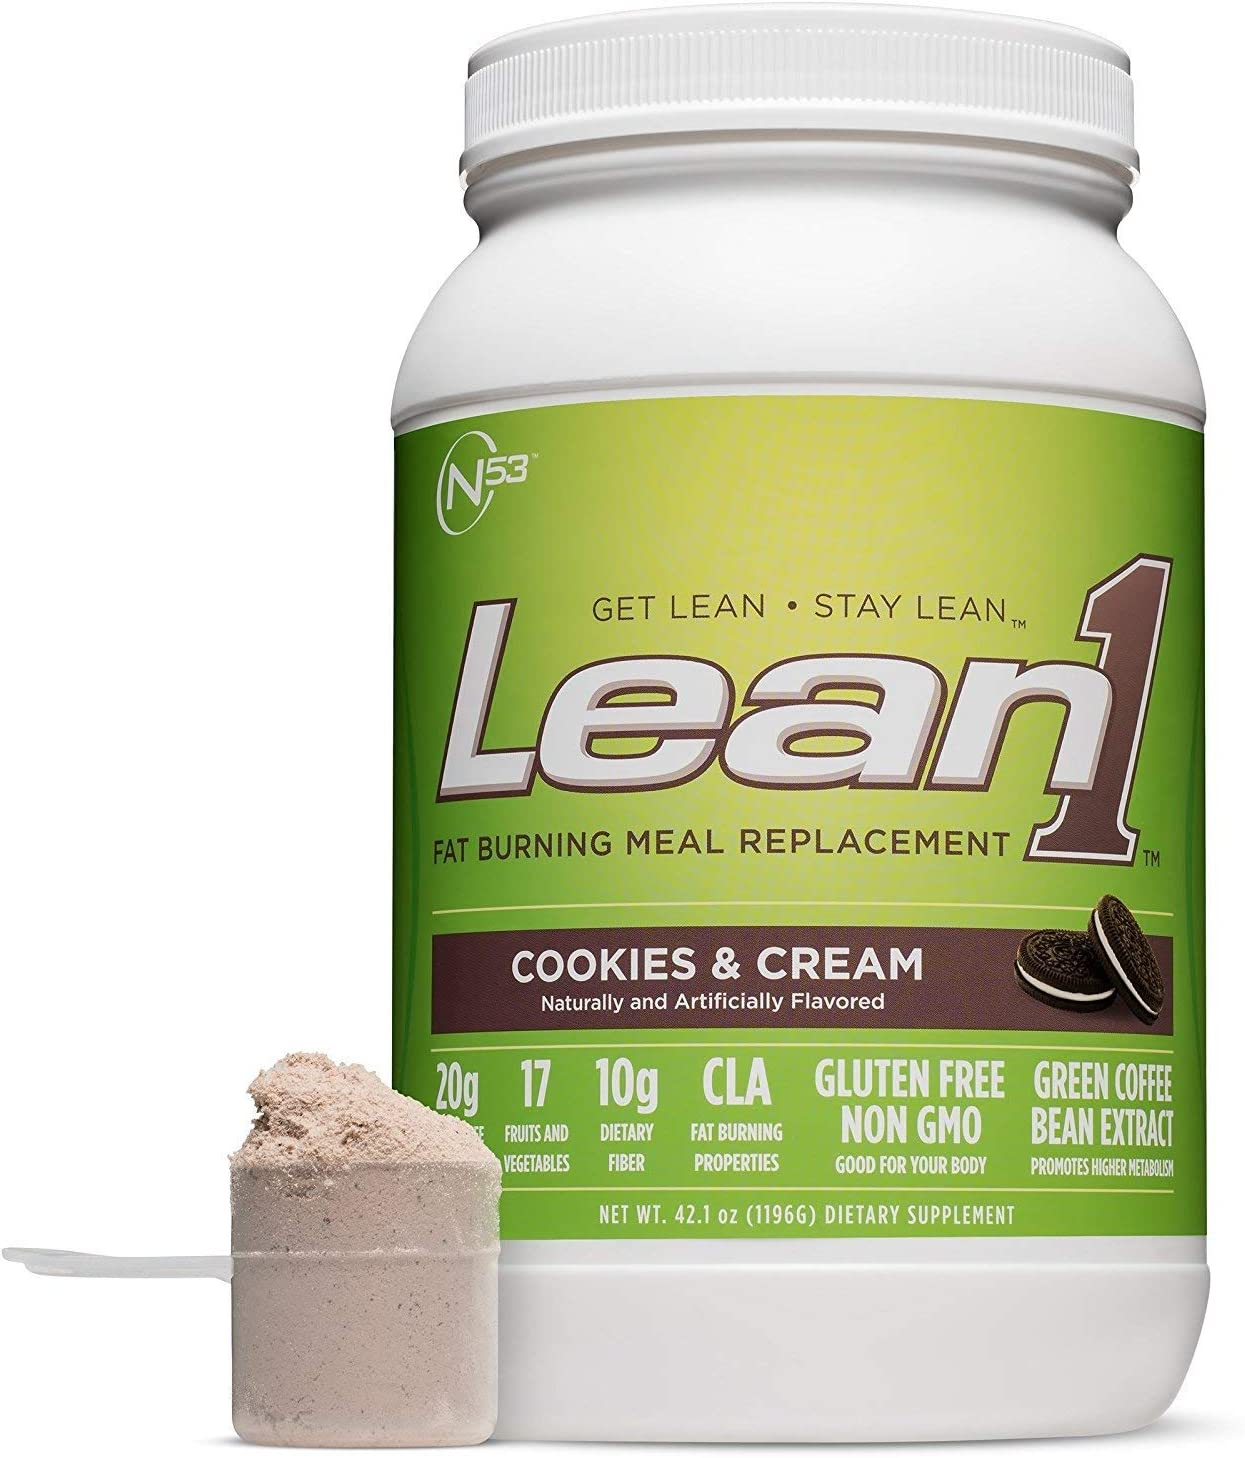 Lean 1 Cookies Cream Protein Powder Meal Replacement Shakes By Nutrition 53, Lactose Gluten Free with Green Coffee Bean Extract, 23 Serving Tub – 42 oz